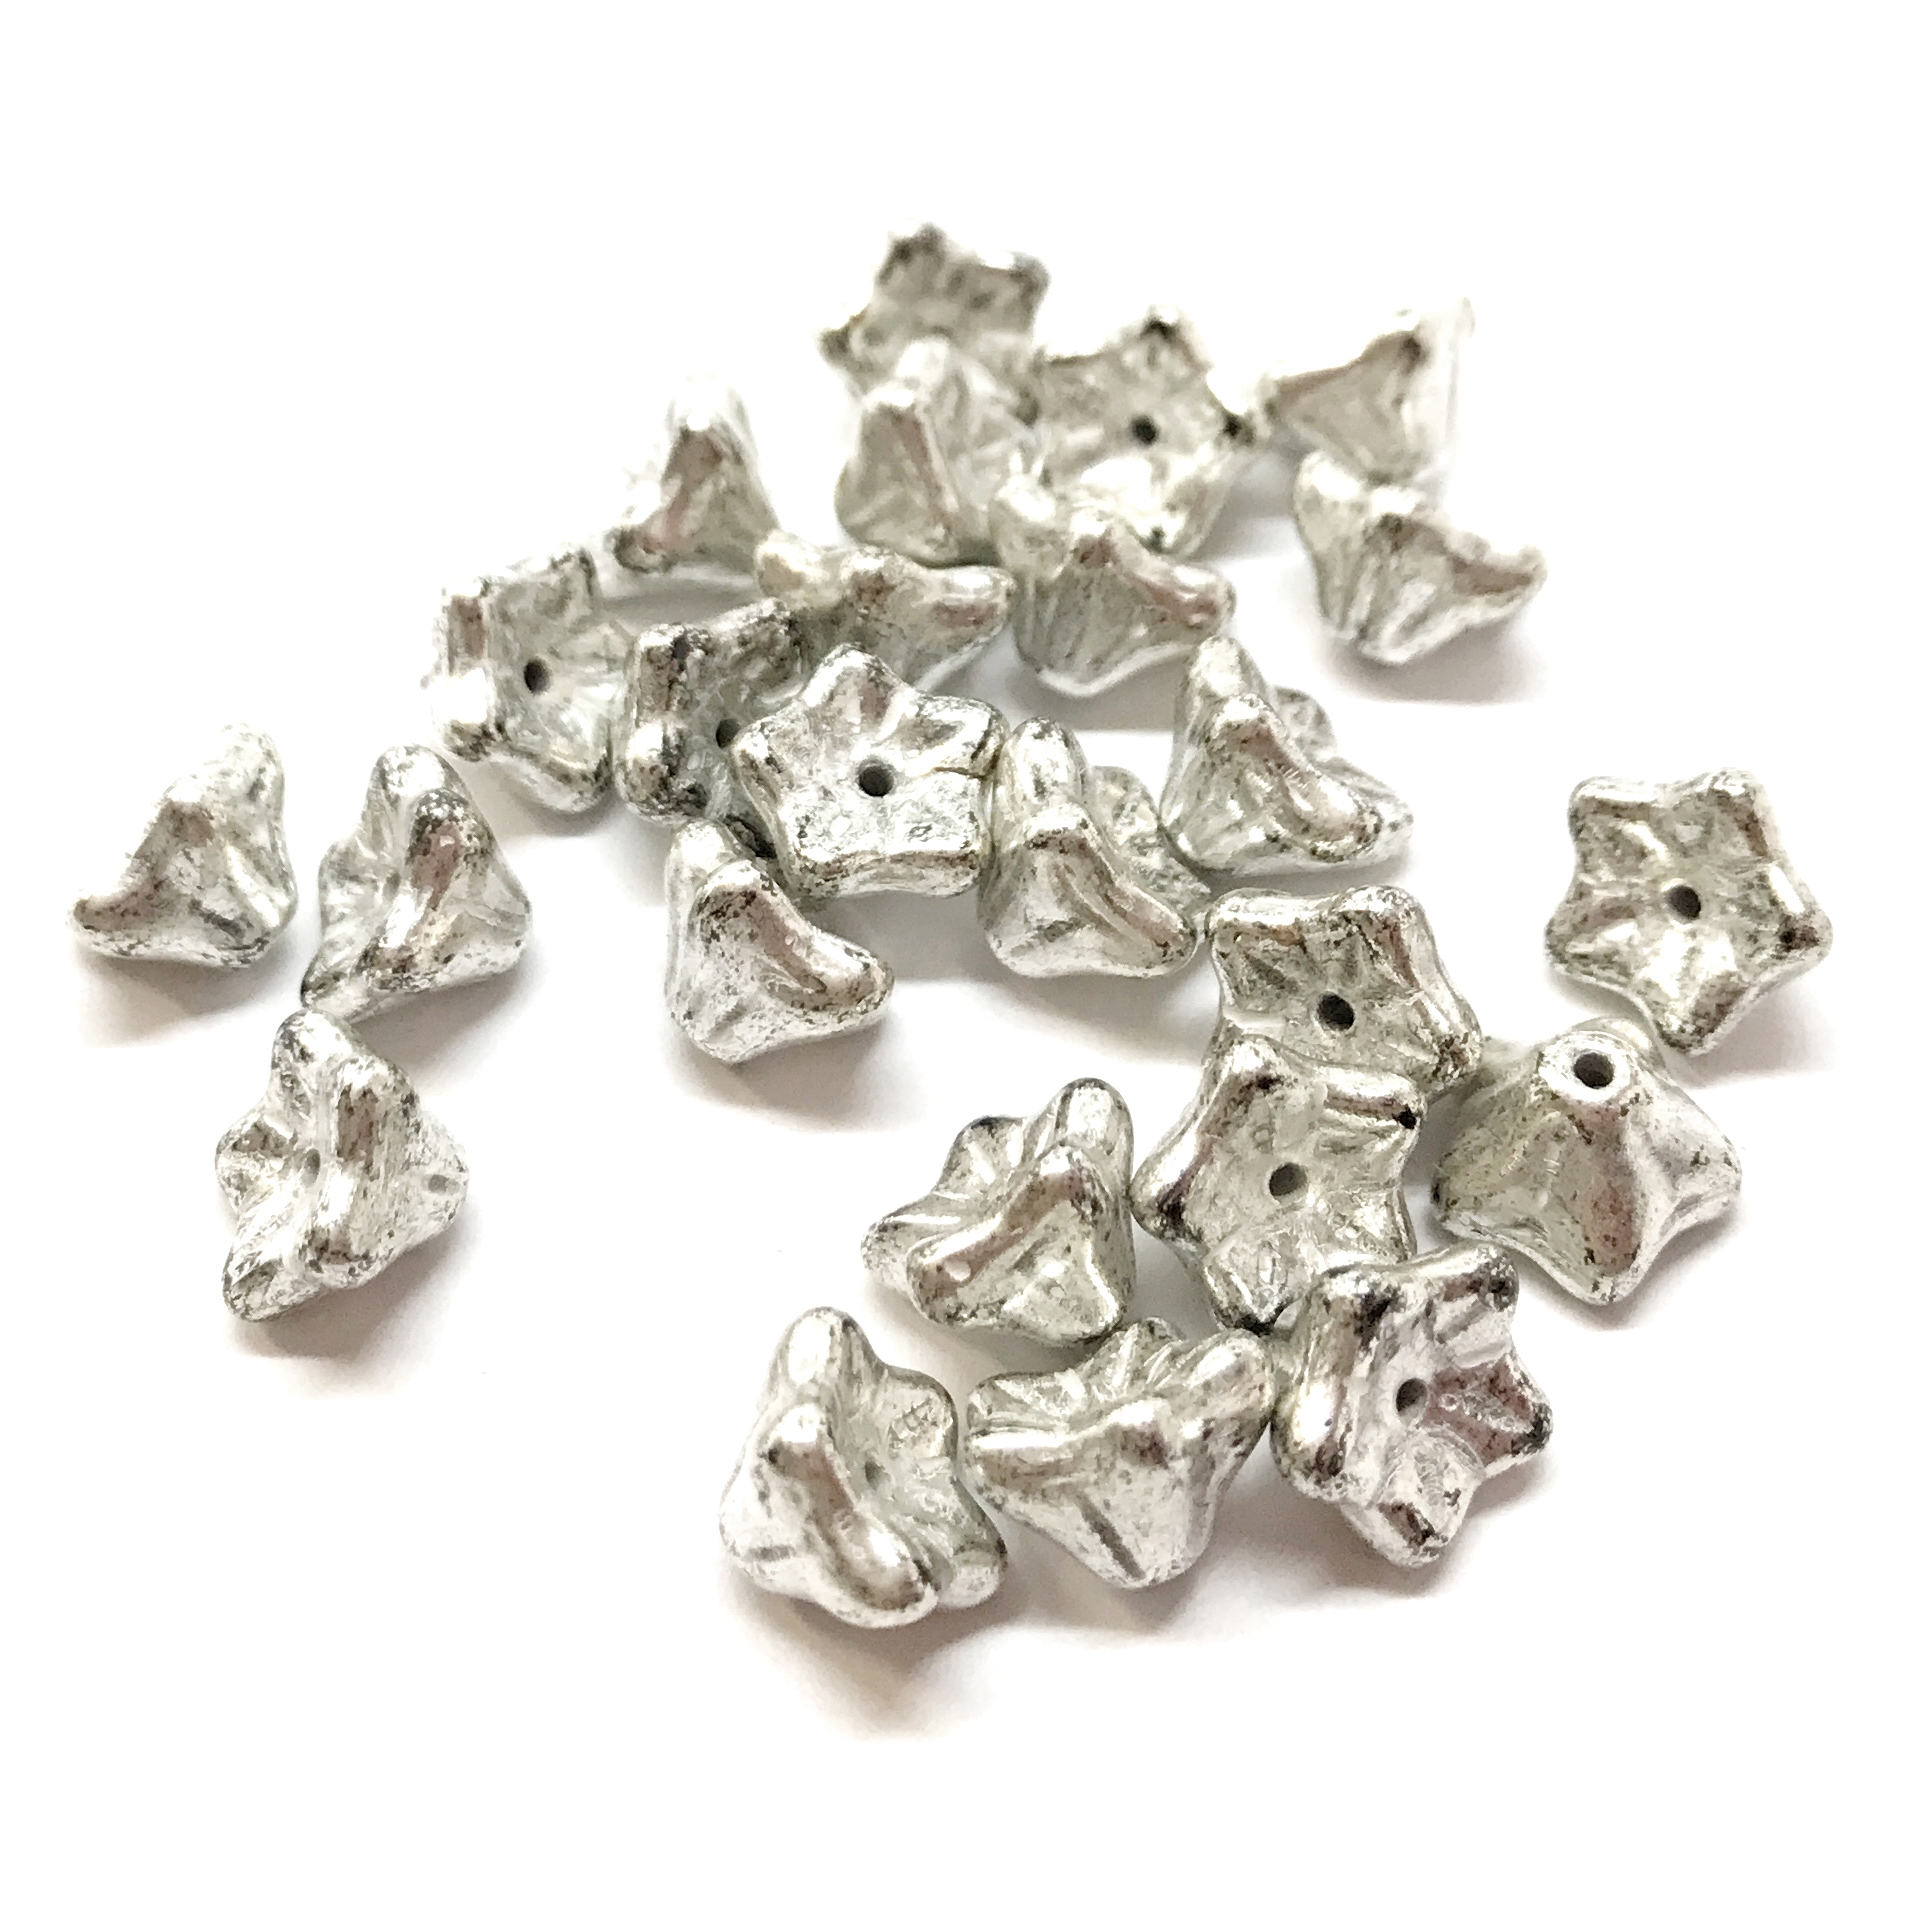 Czech glass beads, tulip beads, antique metallic silver, 04297, beading supplies, vintage jewellery supplies, B'sue Boutiques, bead stringing, glass beads, vintage glass beads, vintage beads